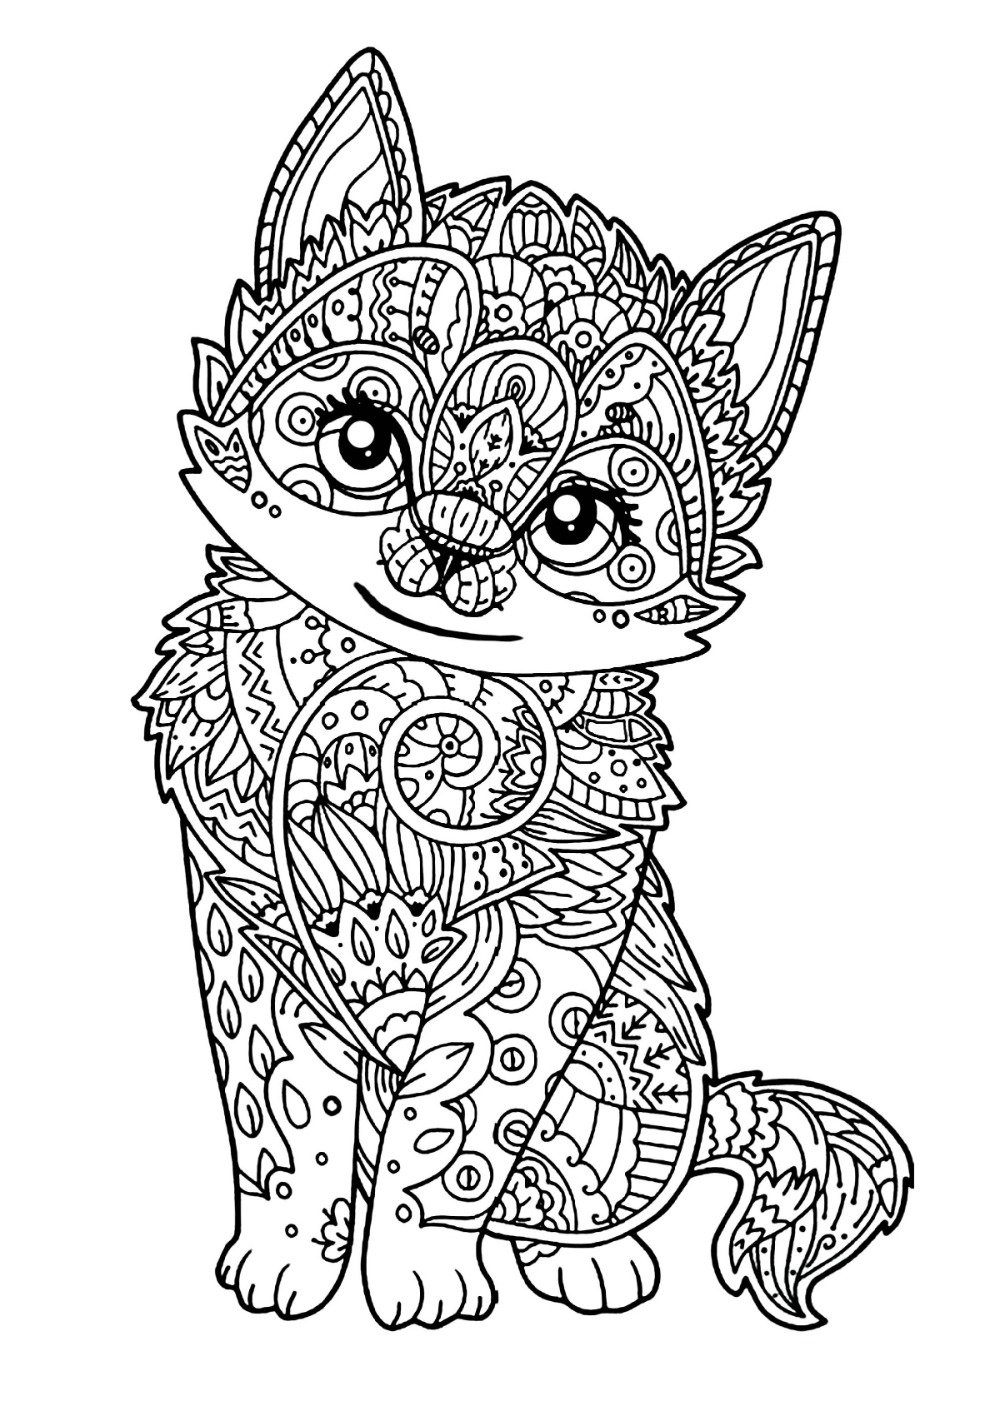 easy animal mandala coloring pages wolf animals coloring pages 100 mandalas zen anti pages easy mandala animal coloring